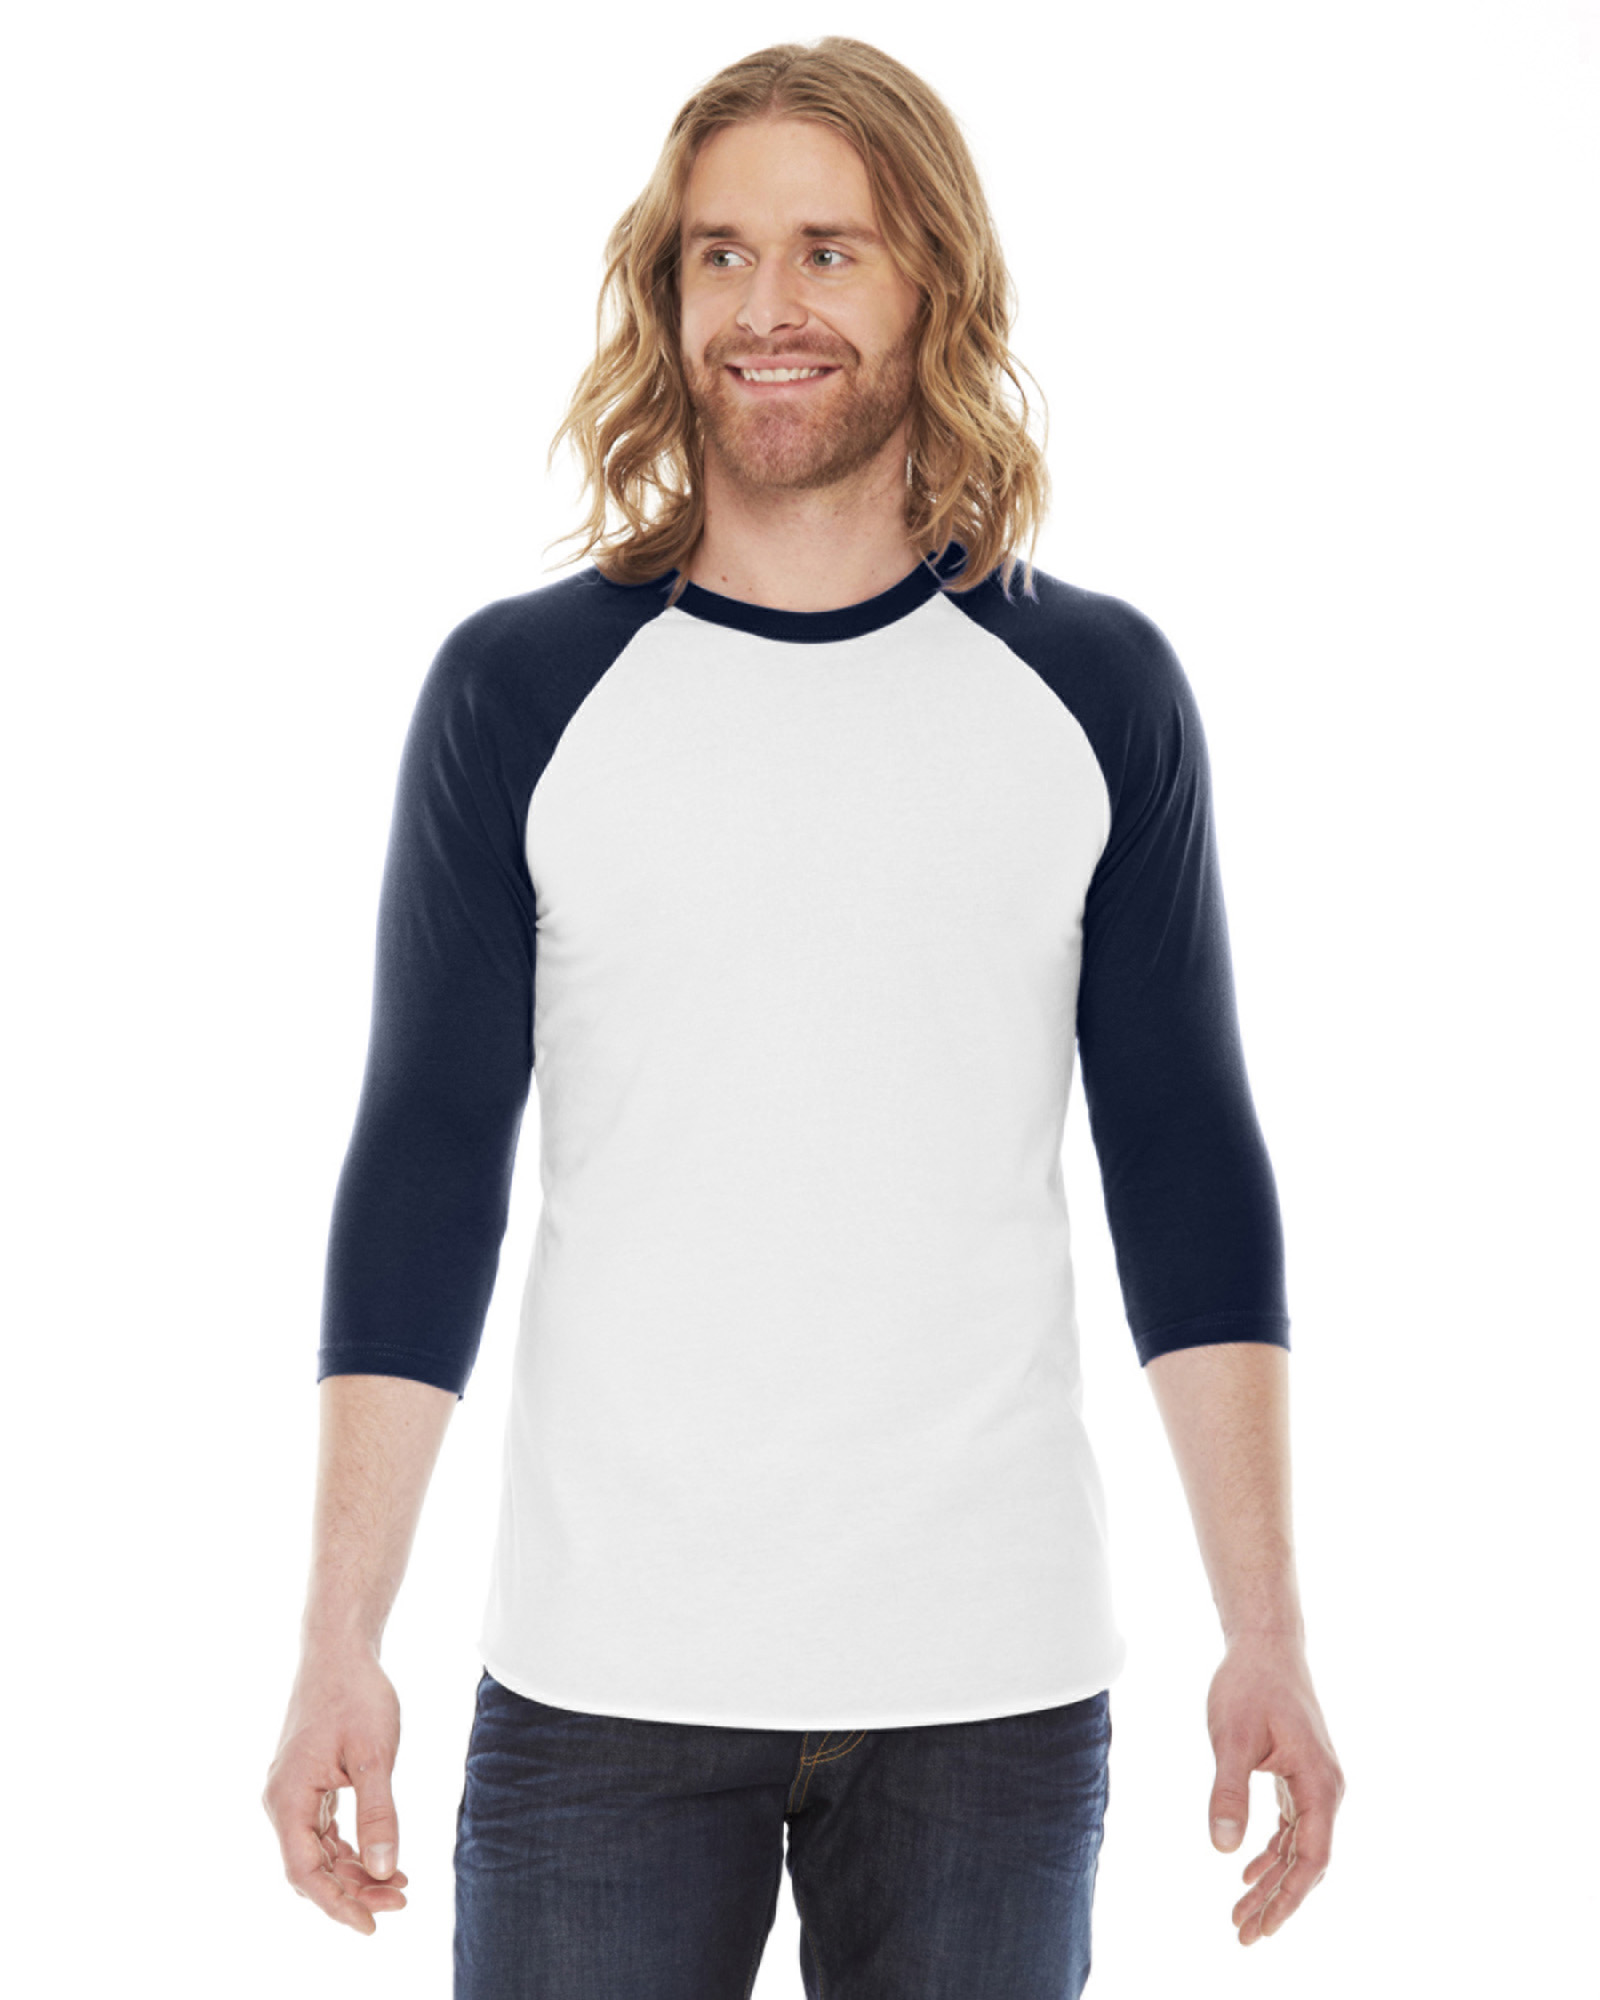 American Apparel Bb453 Unisex Poly Cotton 3 4 Sleeve